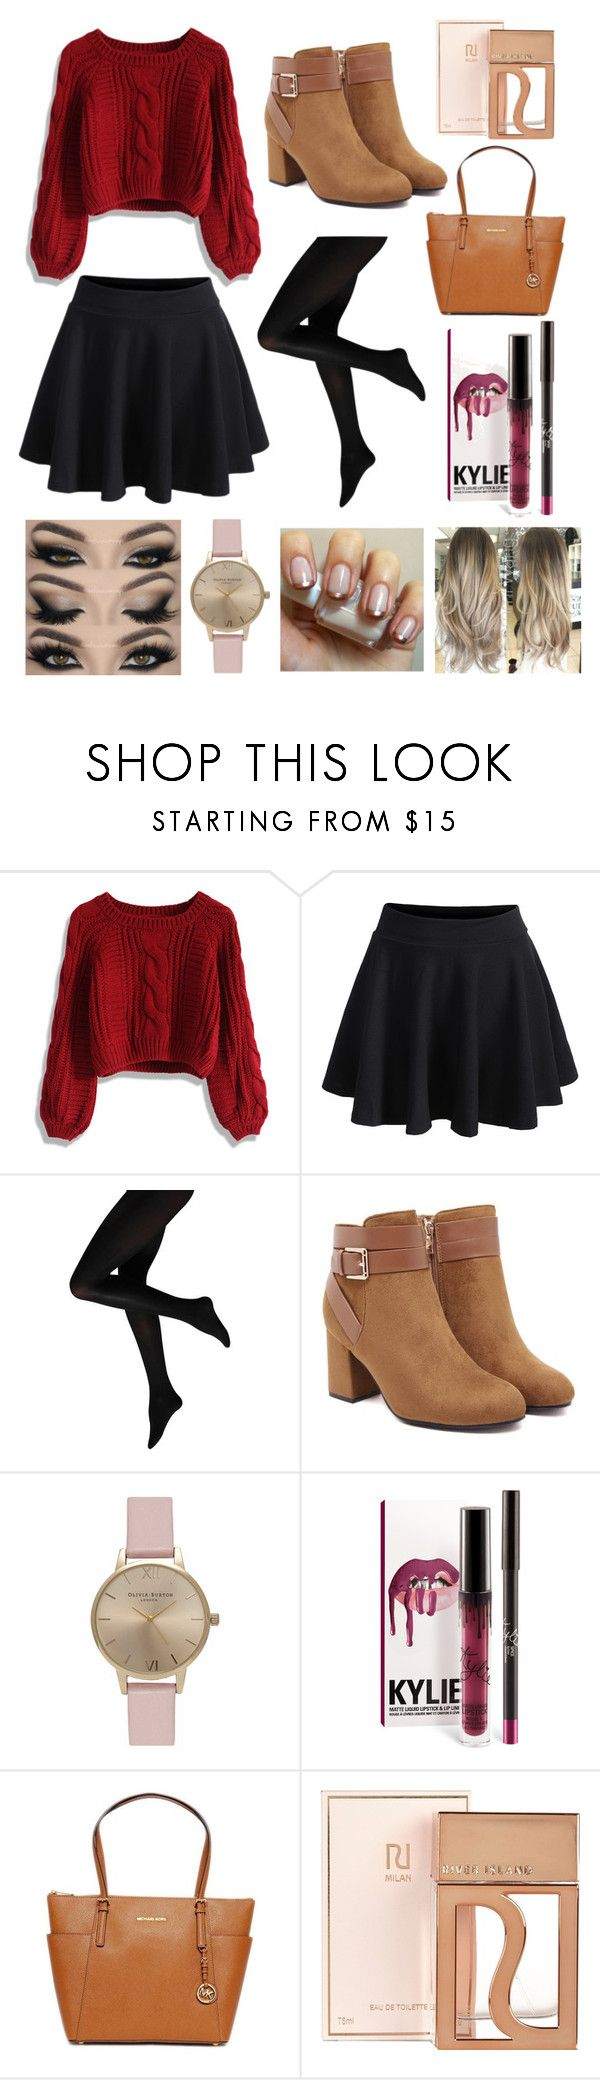 """""""Cute Winter or Fall outfit for cold days"""" by mikaela-greene ❤ liked on Polyvore featuring Chicwish, WithChic, Olivia Burton, Michael Kors and River Island"""